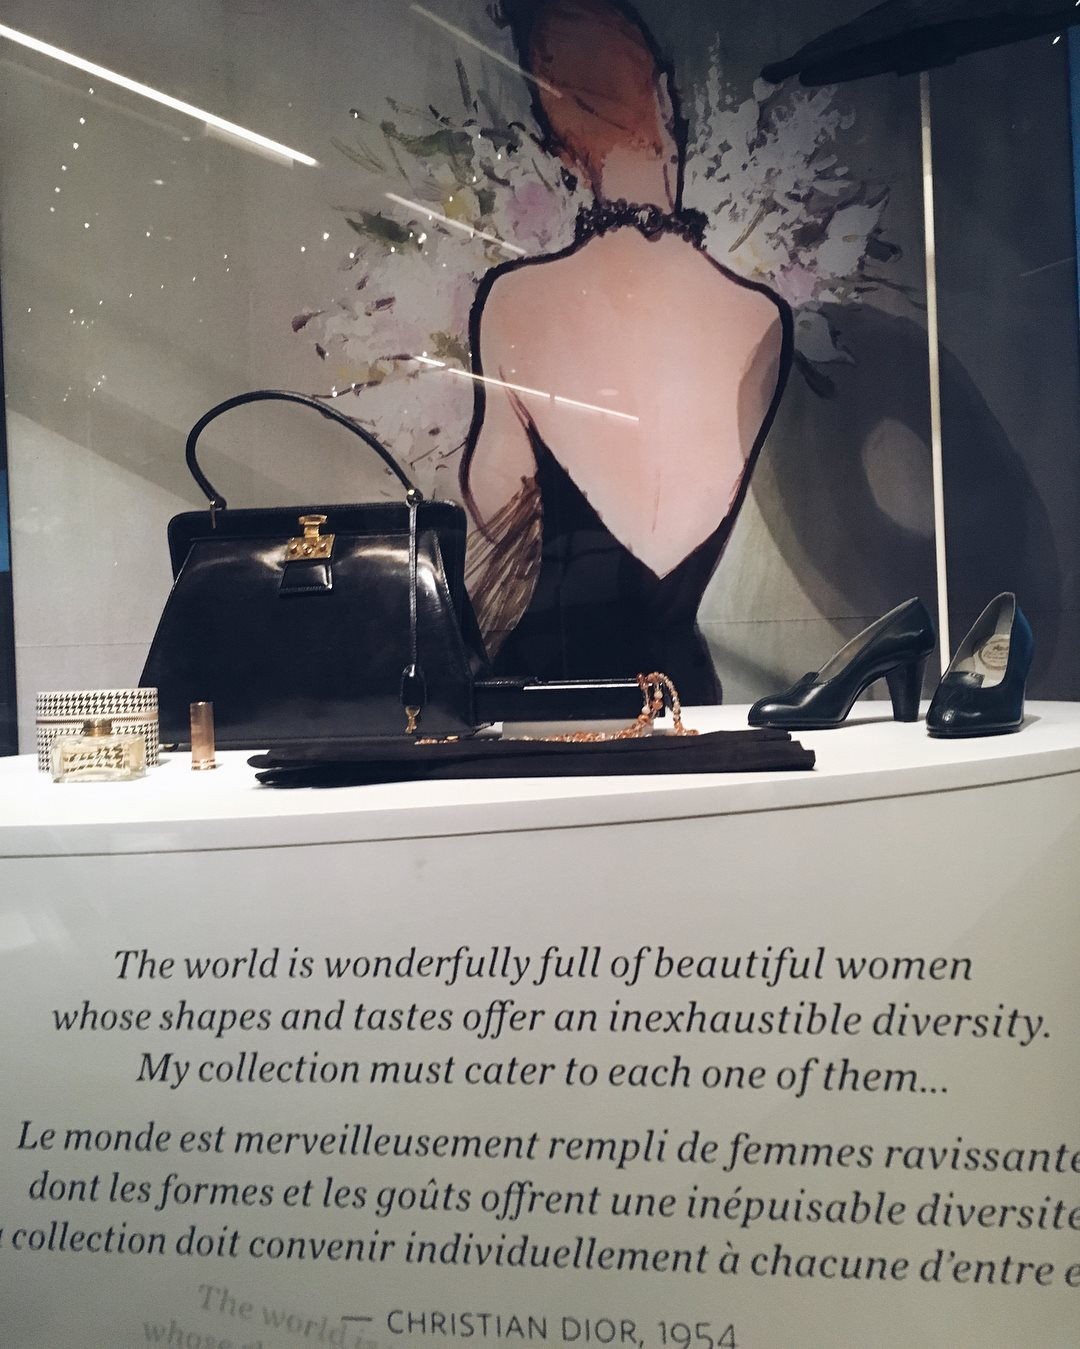 dior quote.jpg